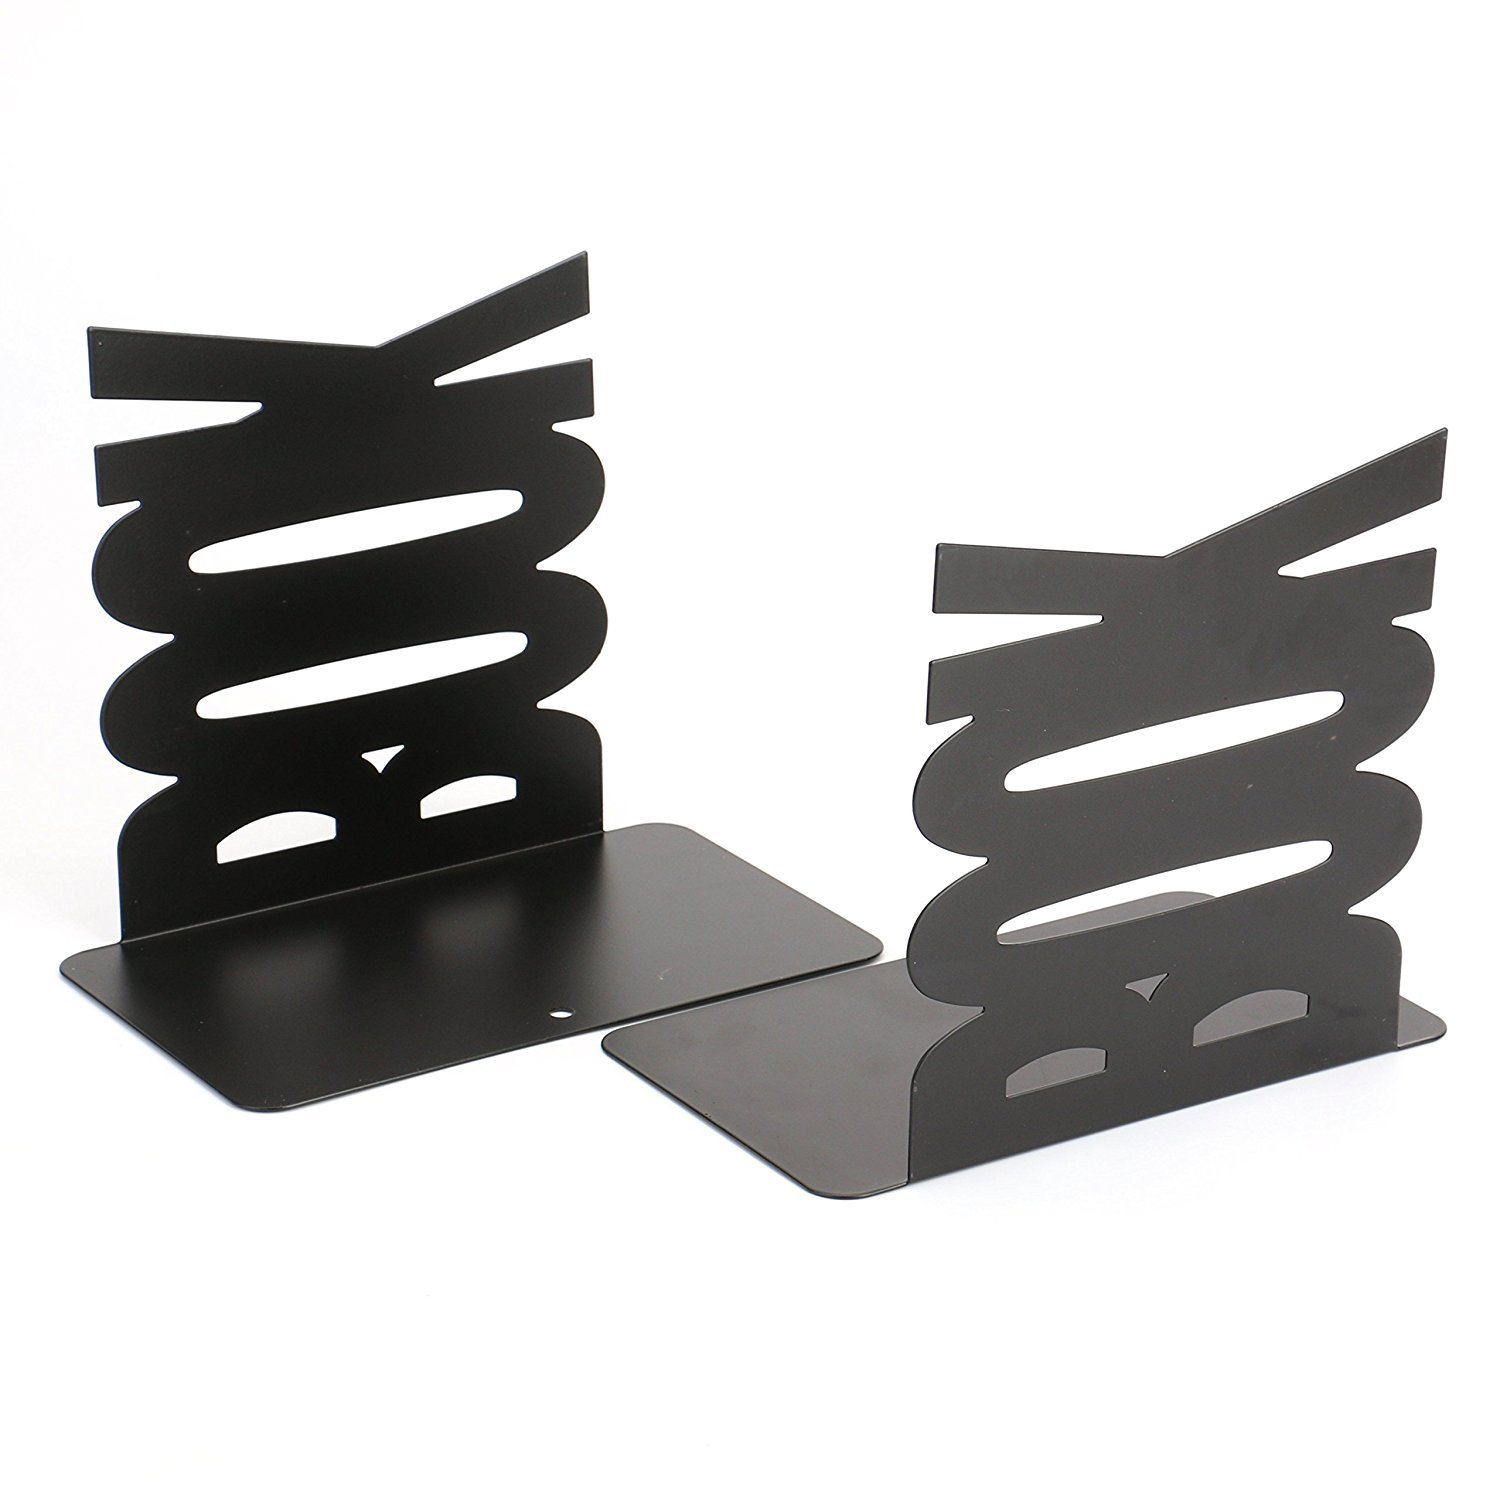 Fasmov Book Bookends Nonskid Art Bookends, 1 Pair(Black) BookBookends-2pcs